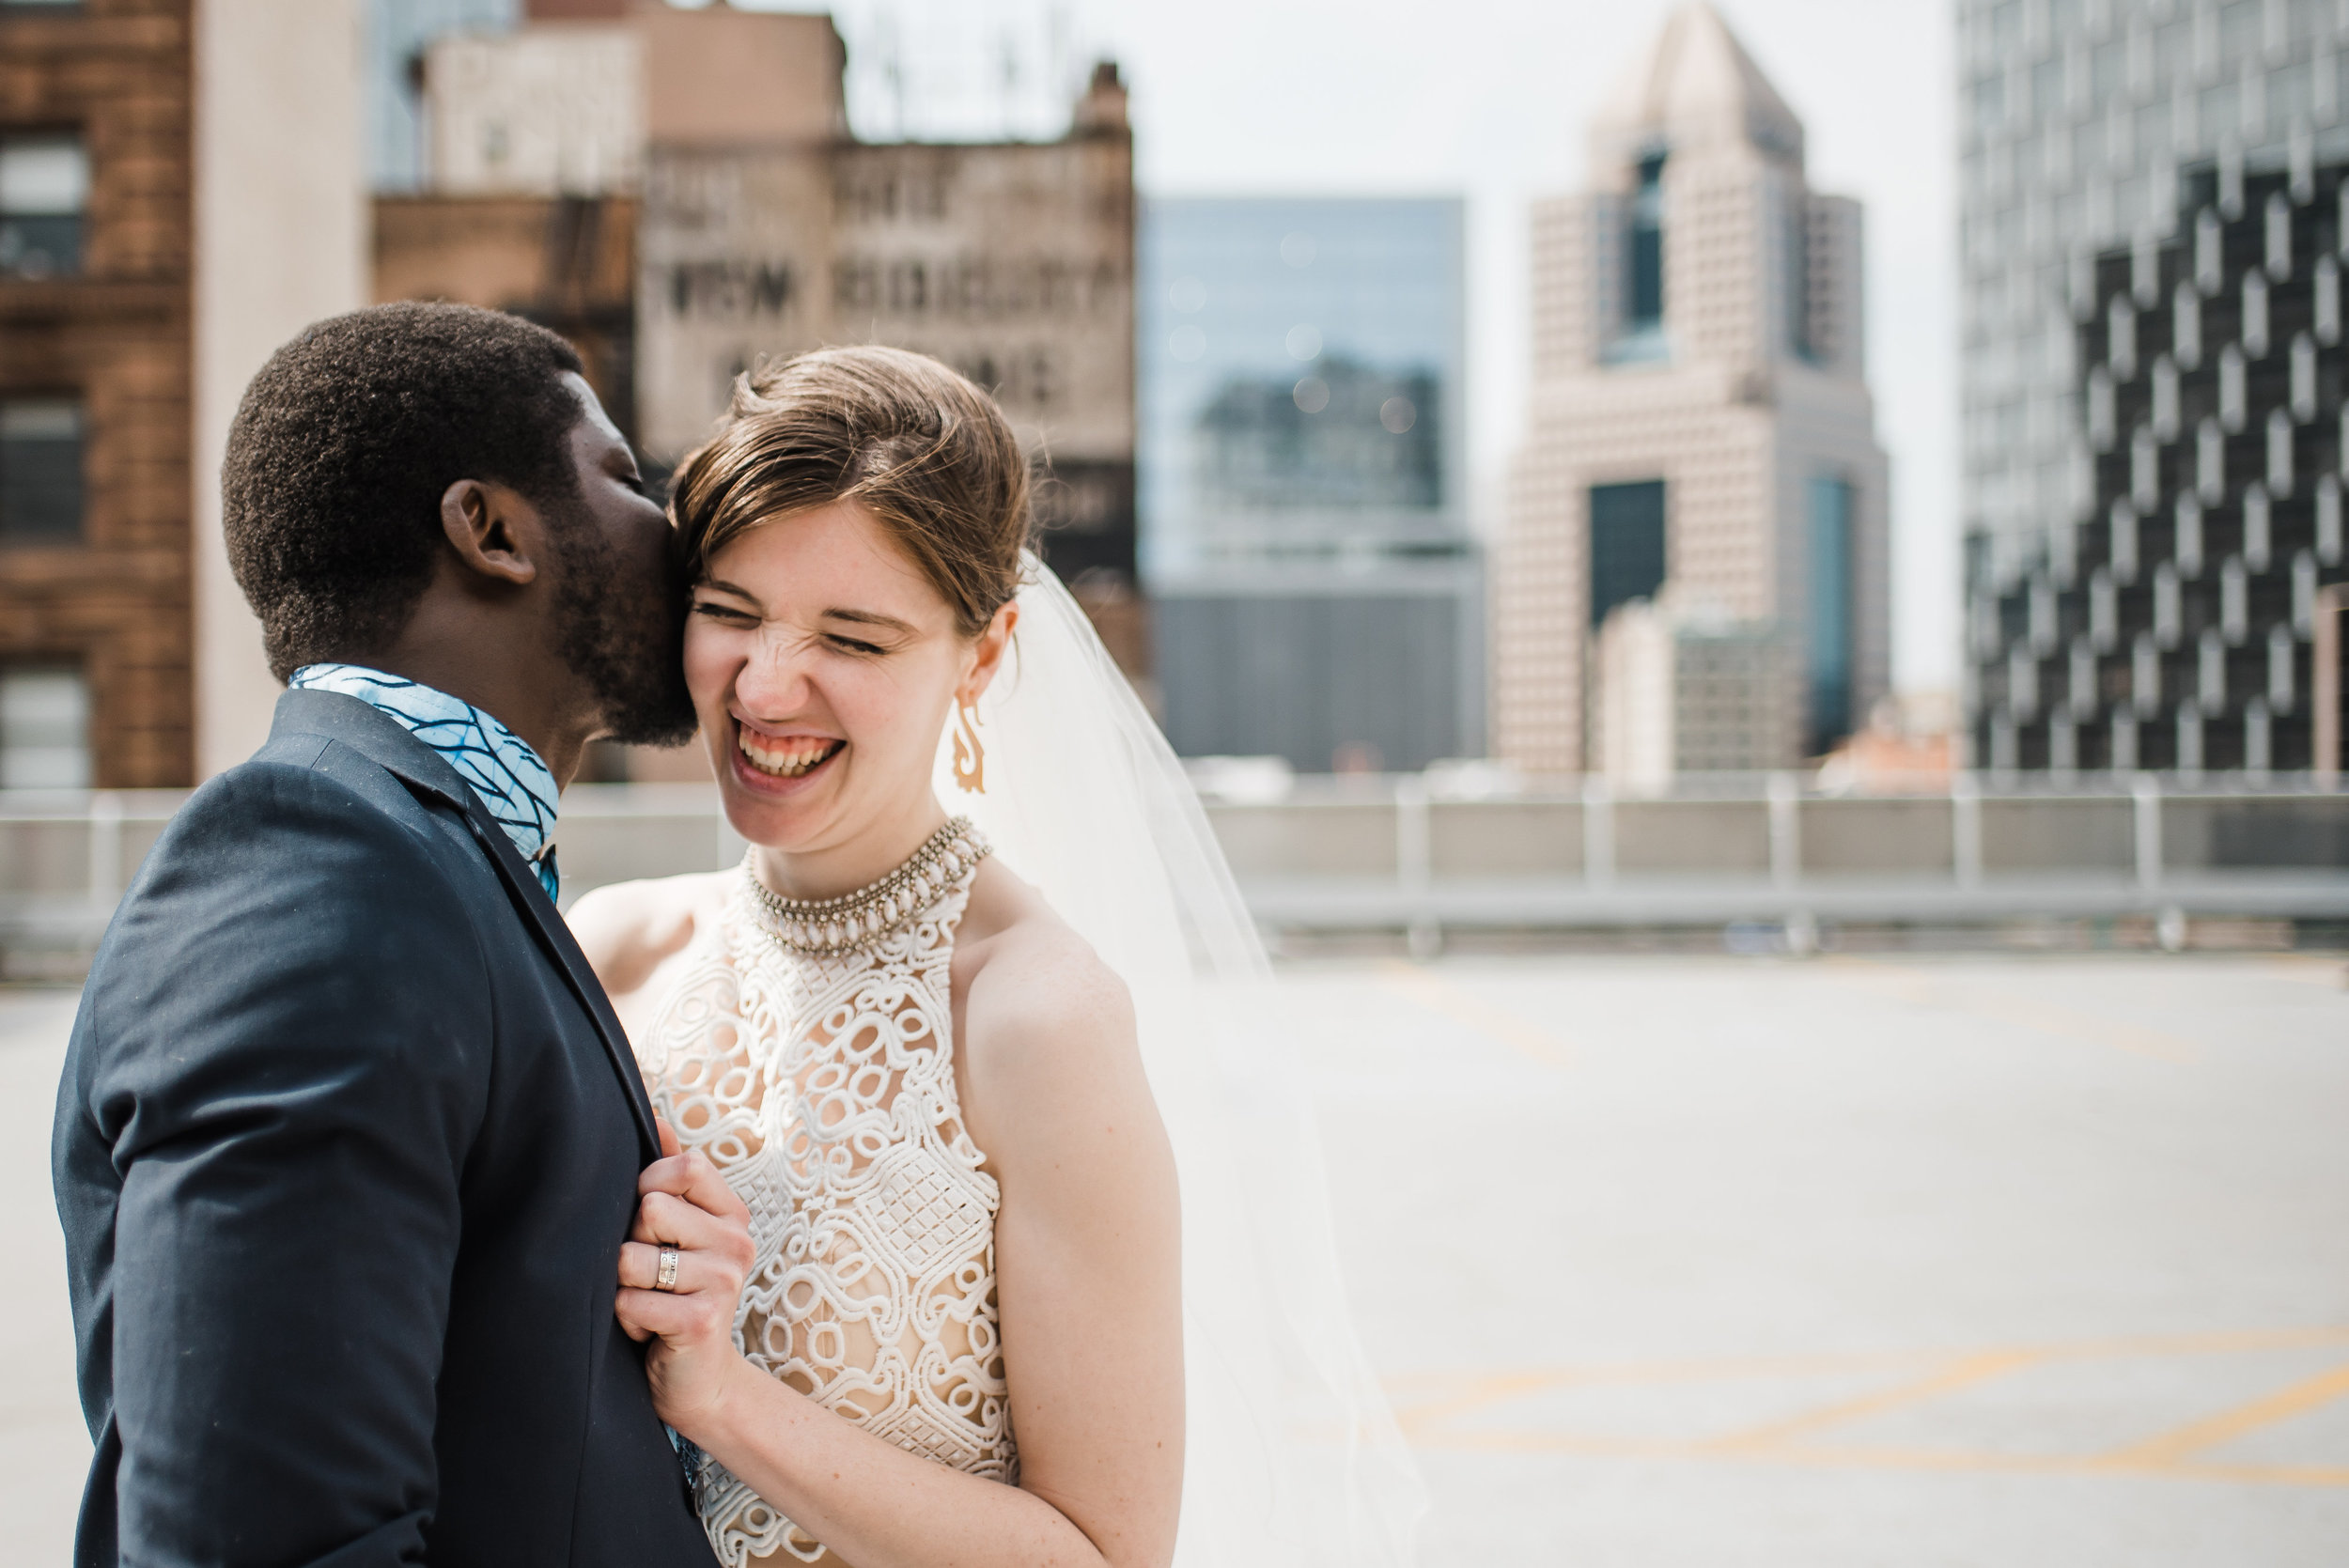 pittsburgh-wedding-photographer-elopement-courthousewedding-downtown-city0315.jpg